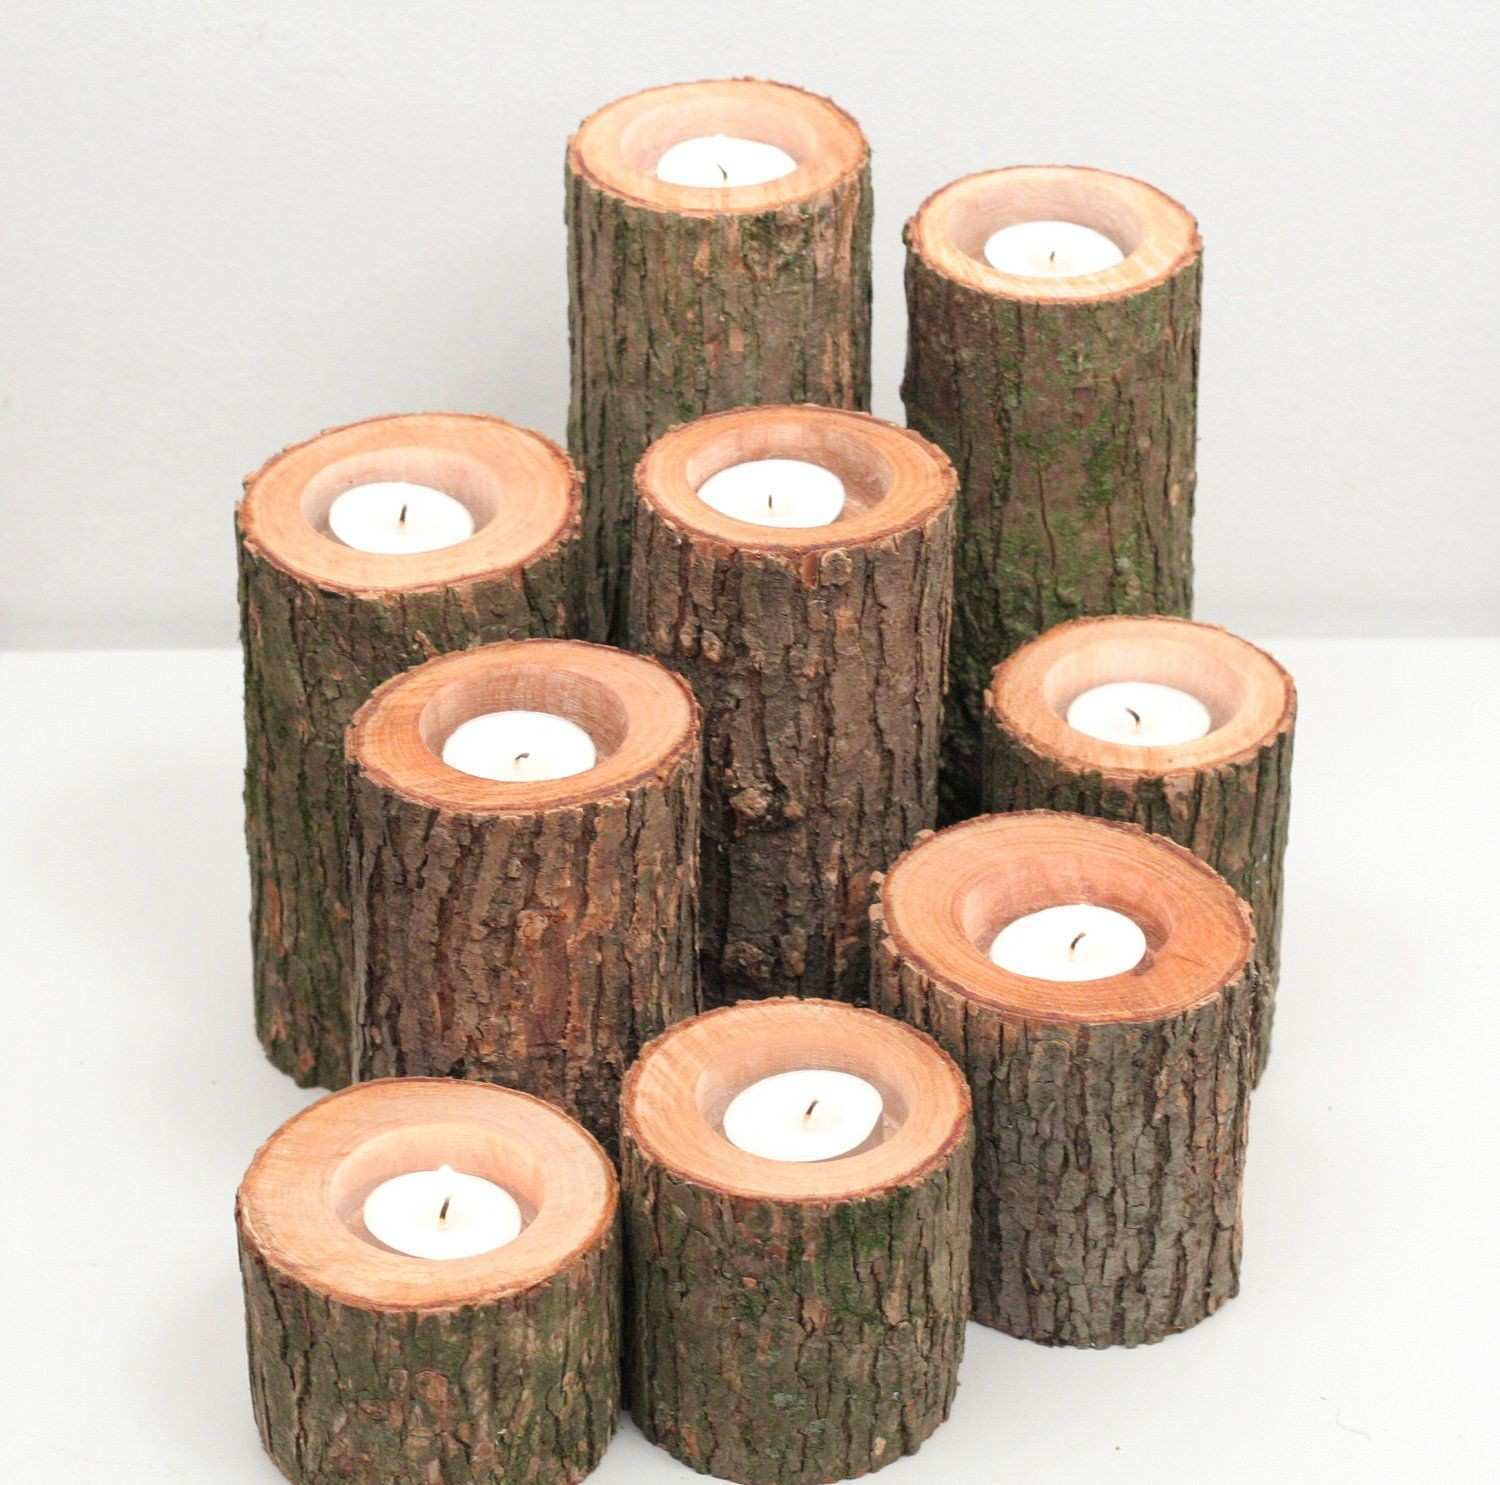 Tree Branch Candle Holders I Rustic Wood Candle Holders Tree Slice